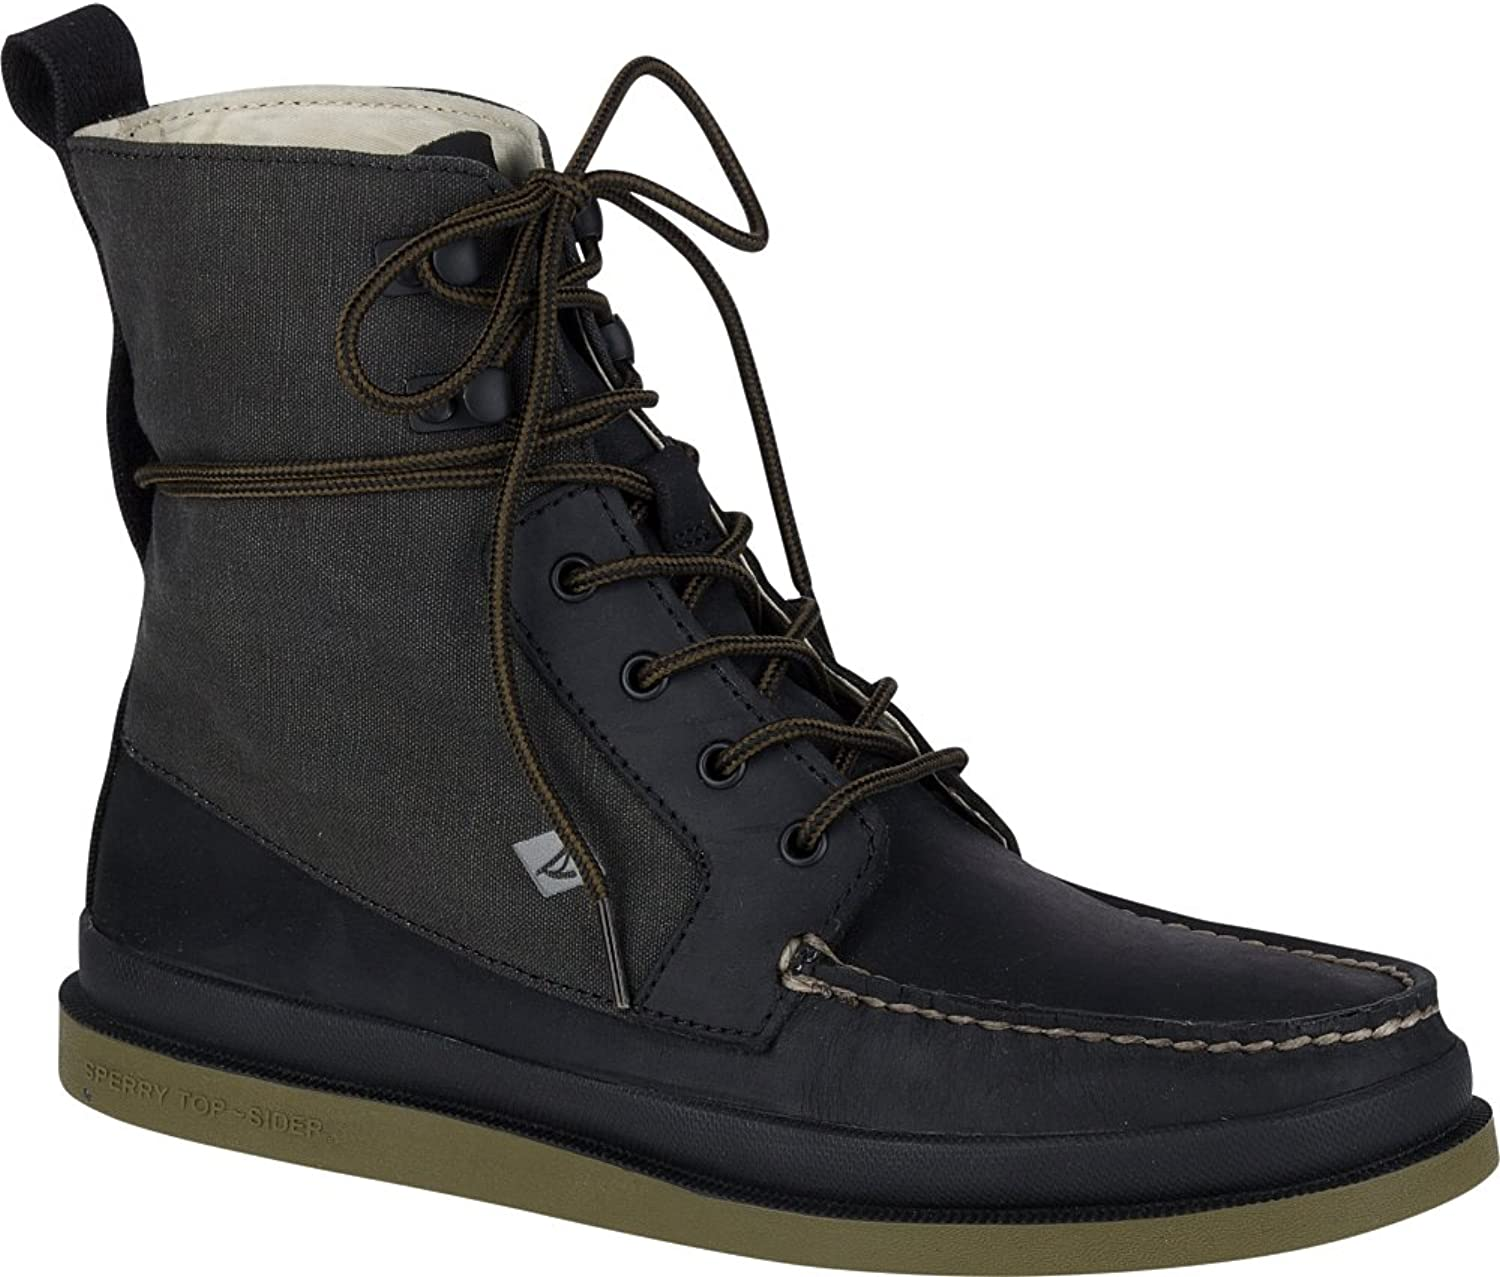 Sperry Top-Sider Authentic Original Surplus Boot